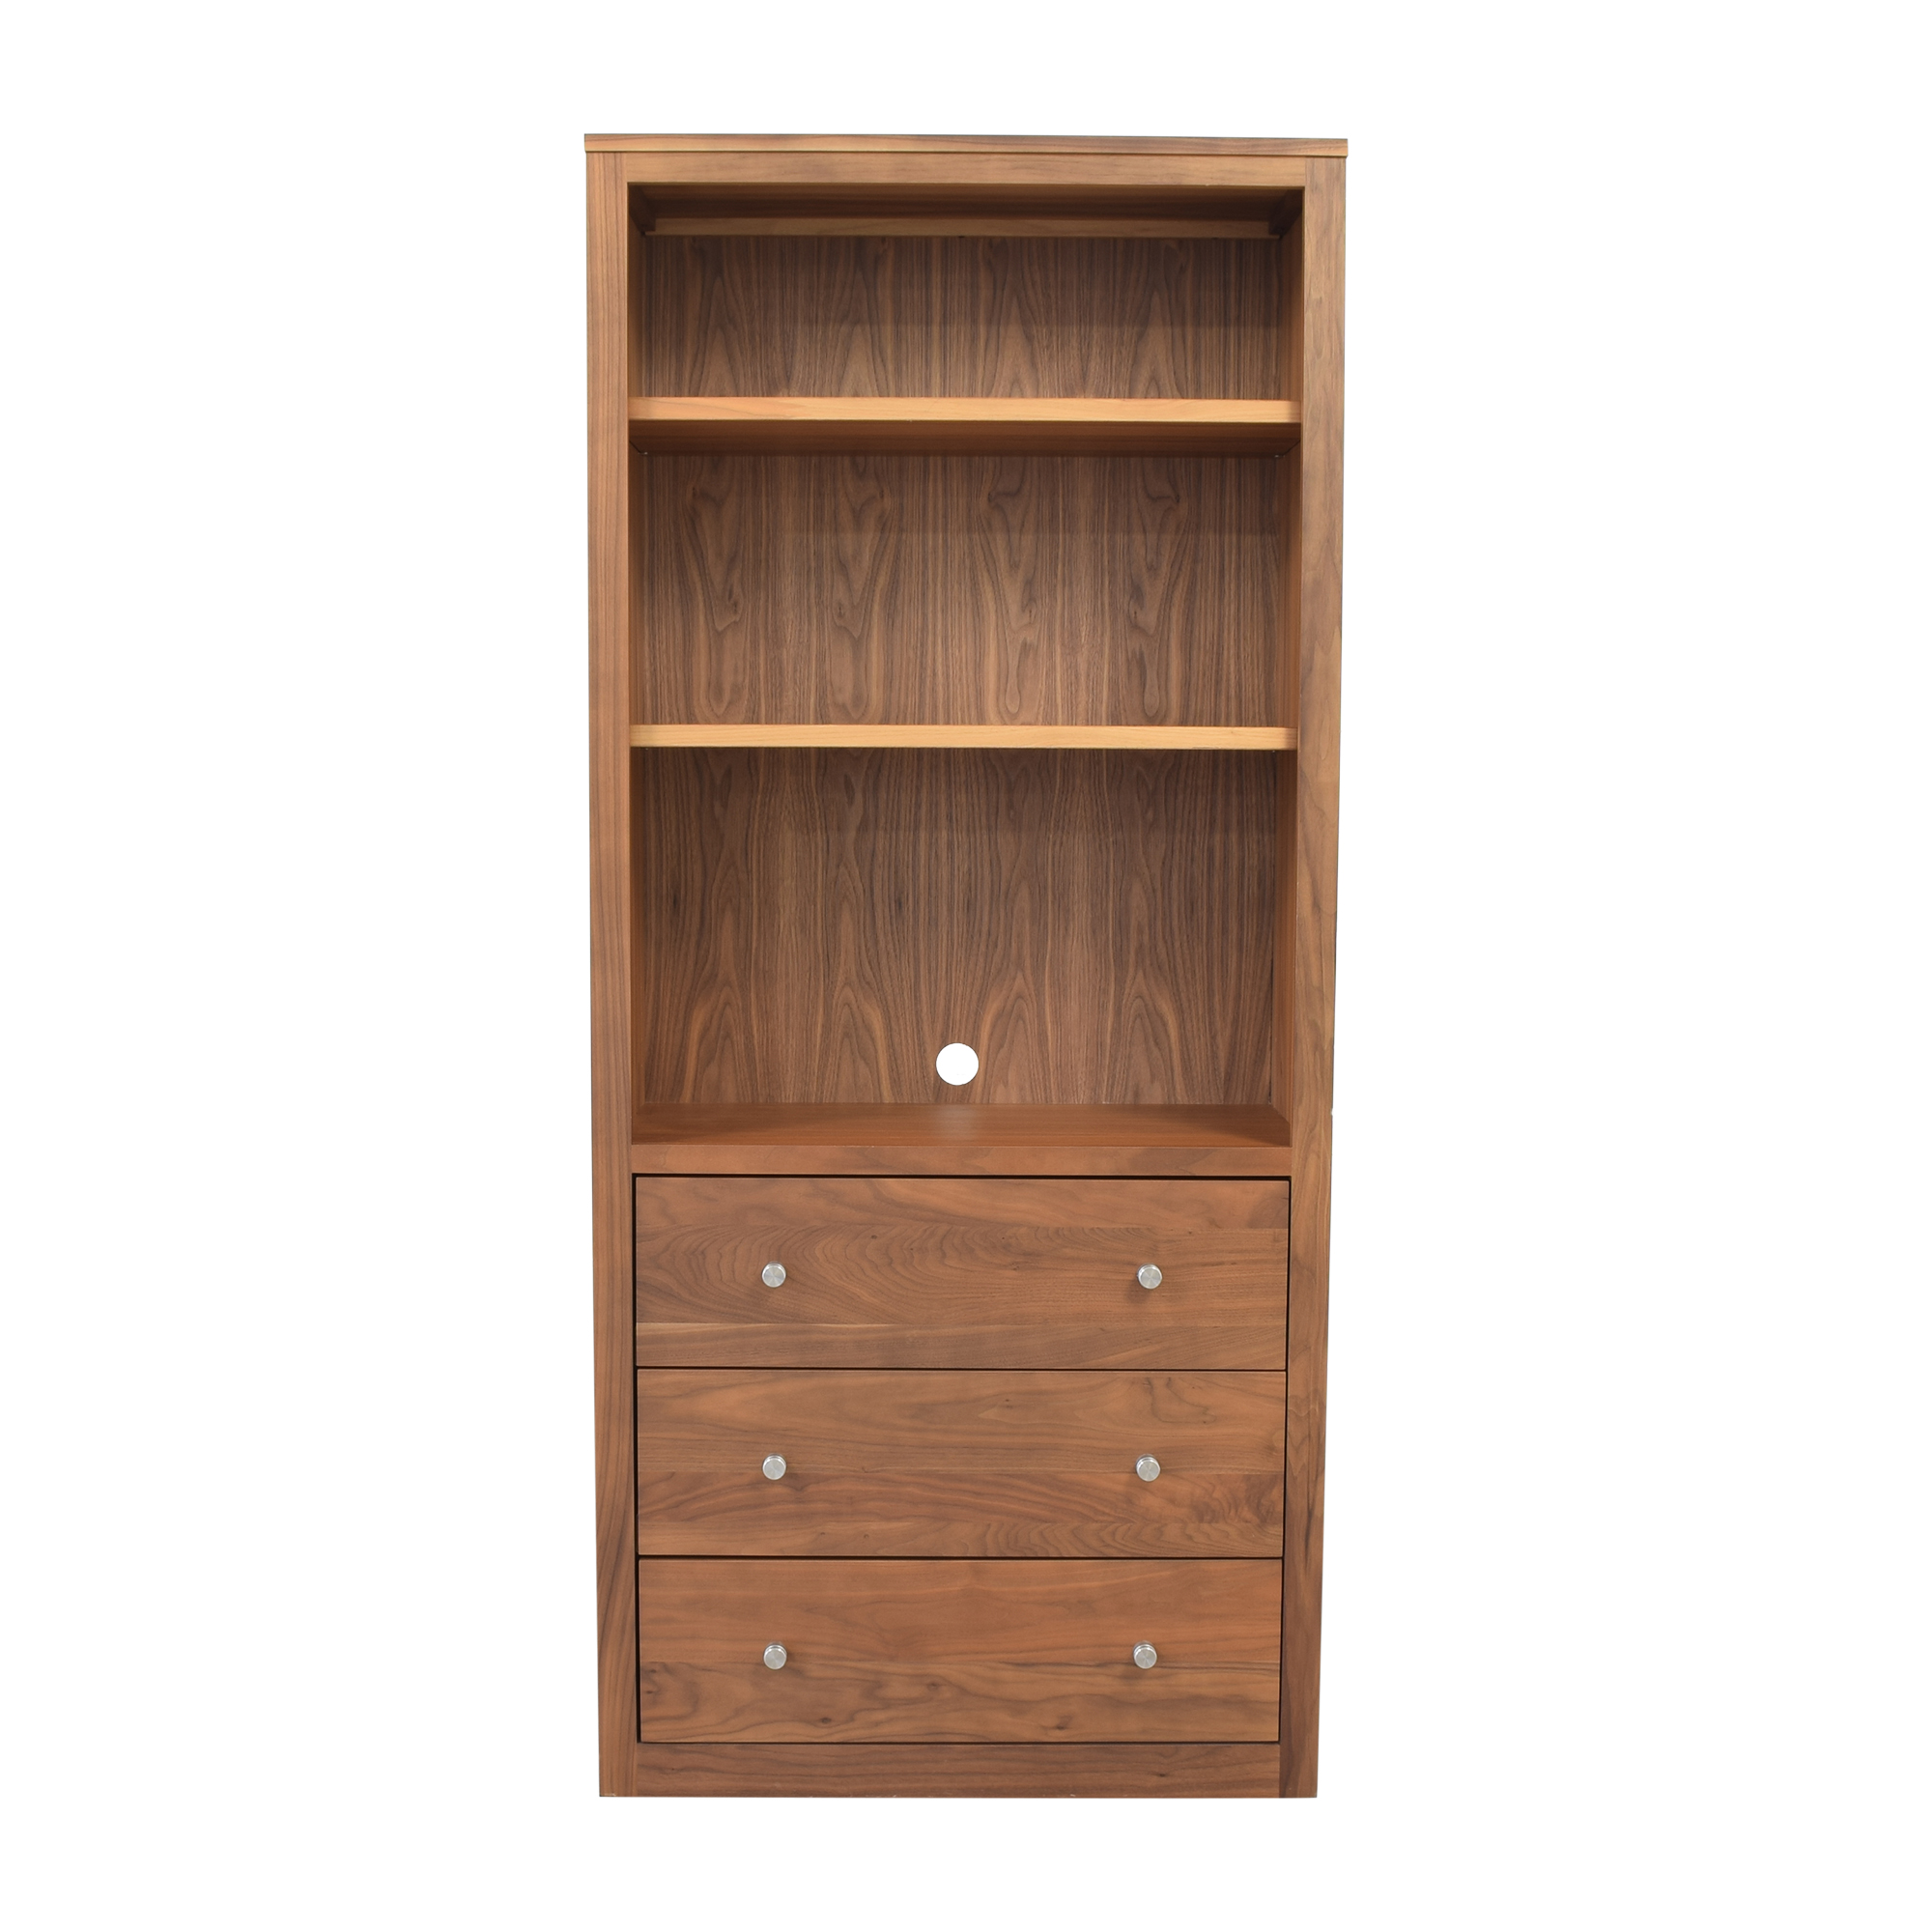 shop Room & Board Woodwind Bookcase with Drawers Room & Board Bookcases & Shelving